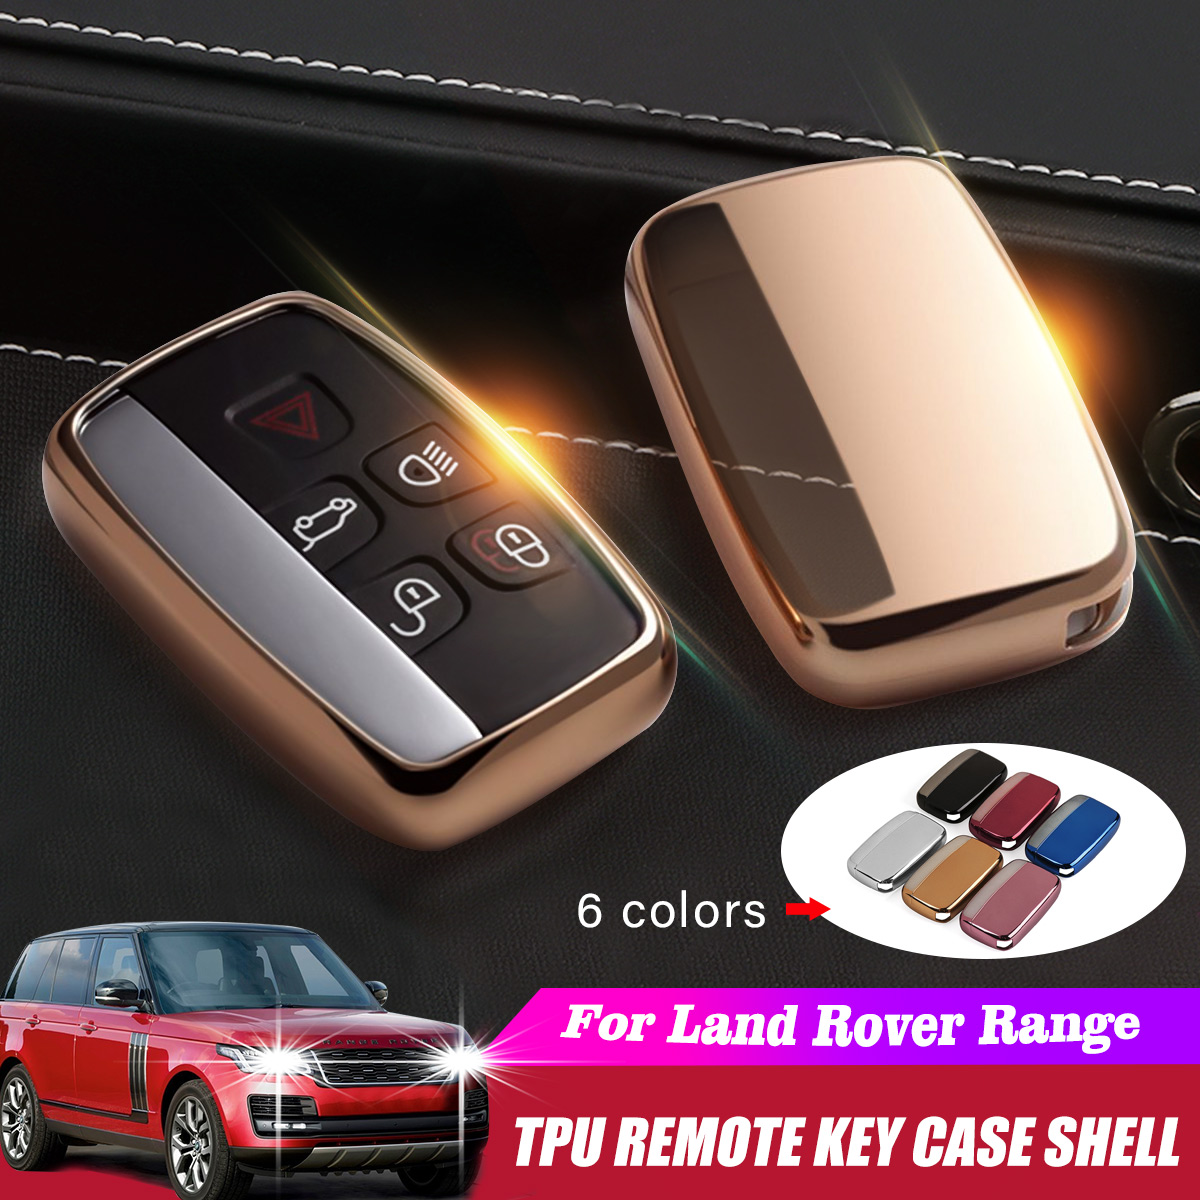 TPU Car Key Case Cover For Land Rover A9 Range Rover Sport 4Evoque Freelander 2 Discovery For Jaguar XE XJ XJL XF C-X16 Guitar